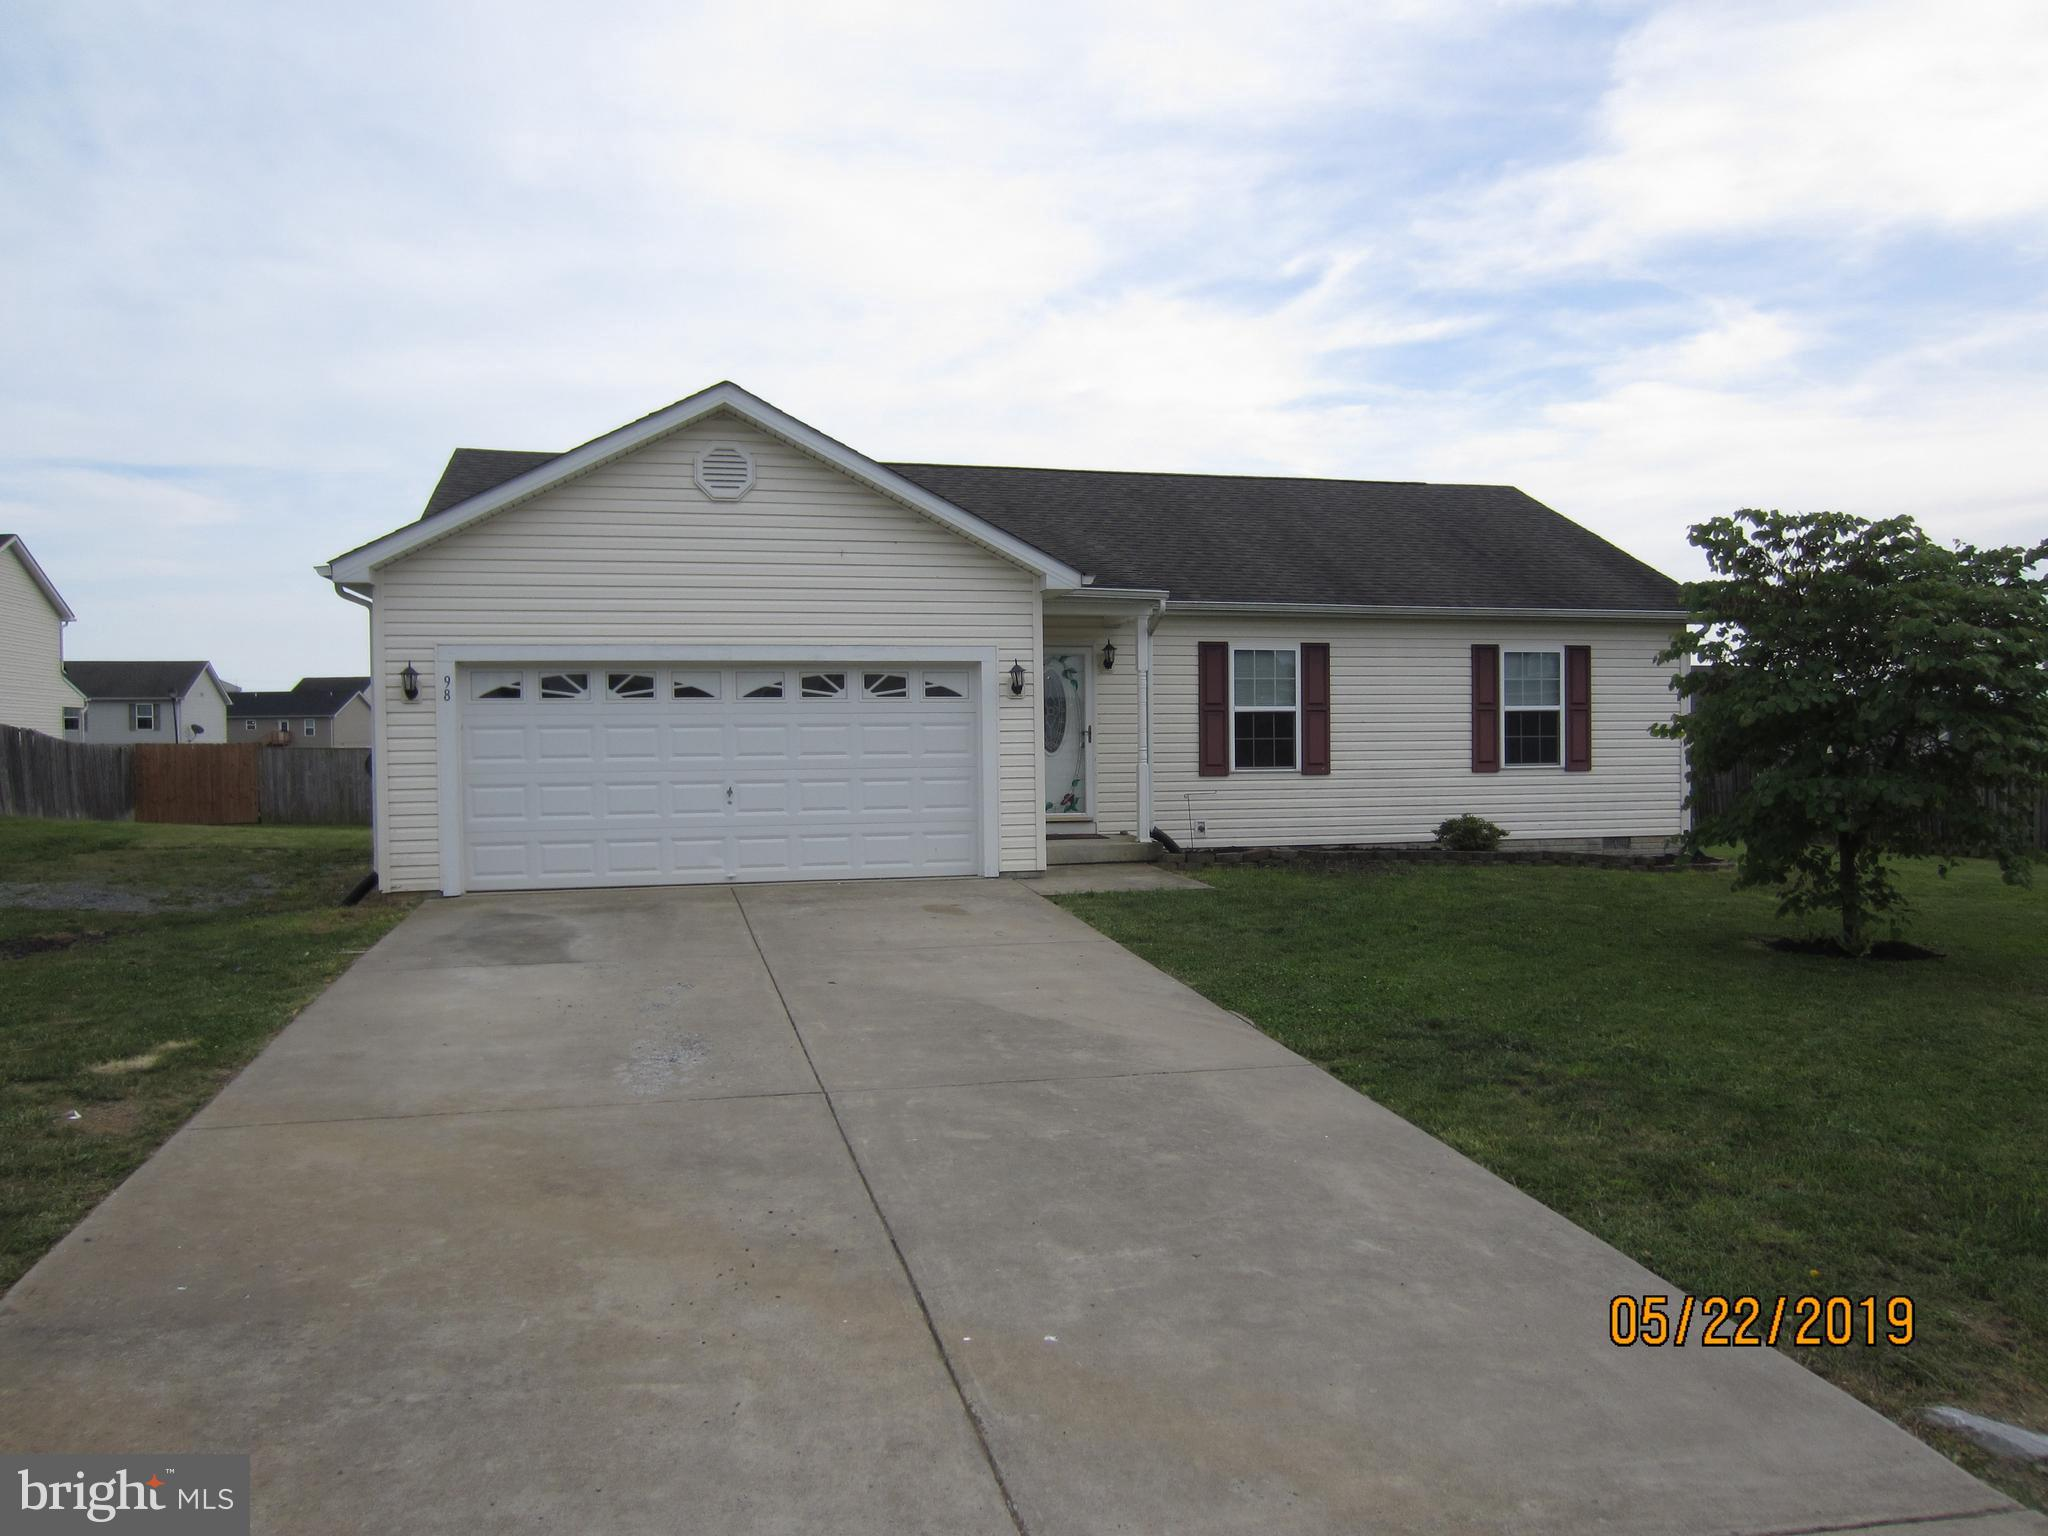 Well maintained rancher on a nicely sized, level lot,  3 bedrooms, 2 full baths.  This home is vacan